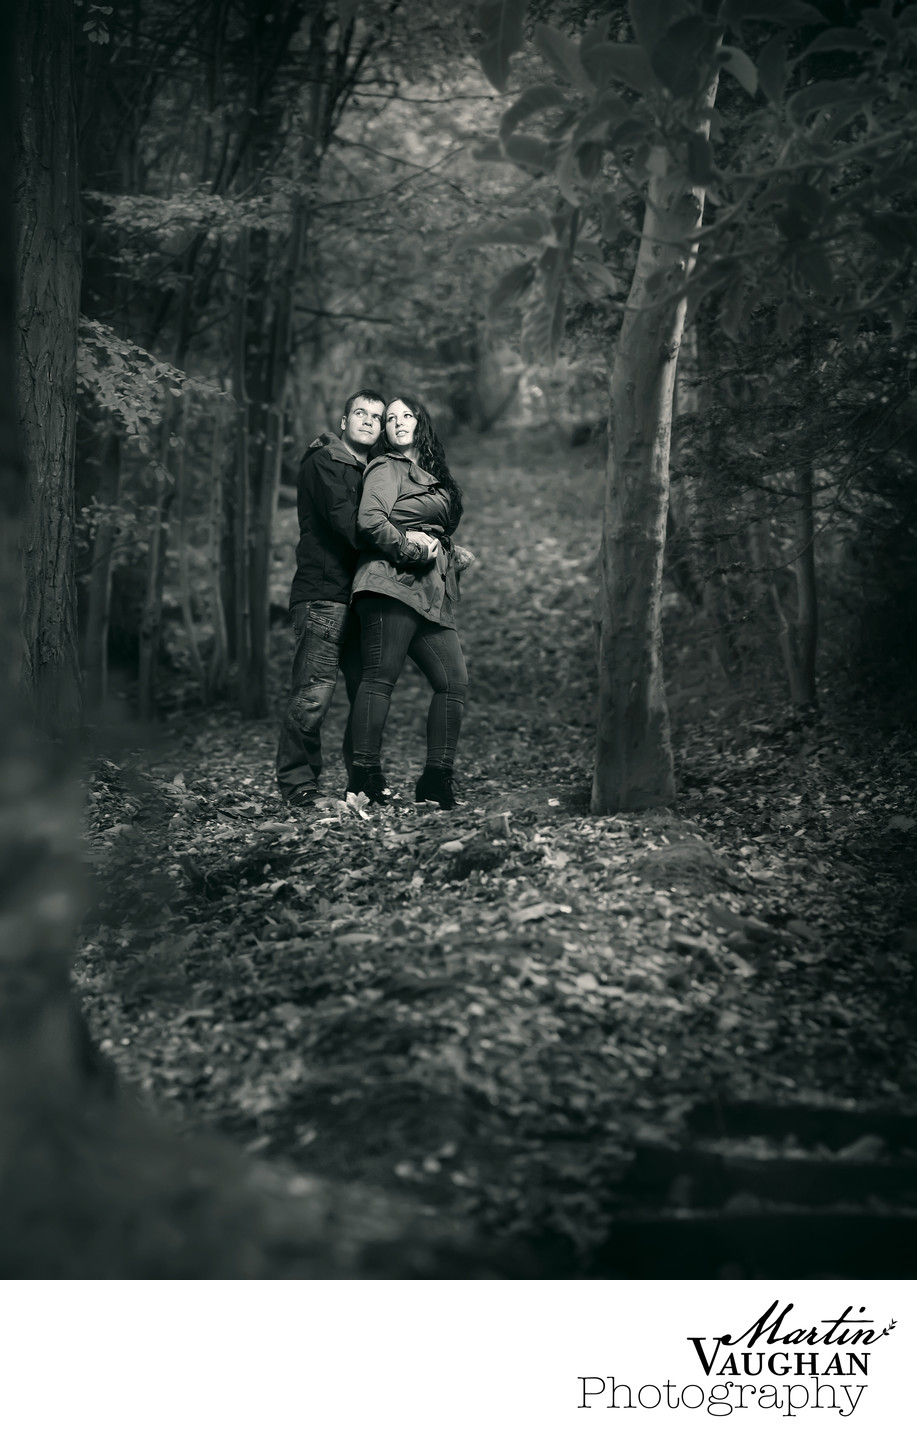 Engagement shoot by Martin Vaughan in Pwllycrochan